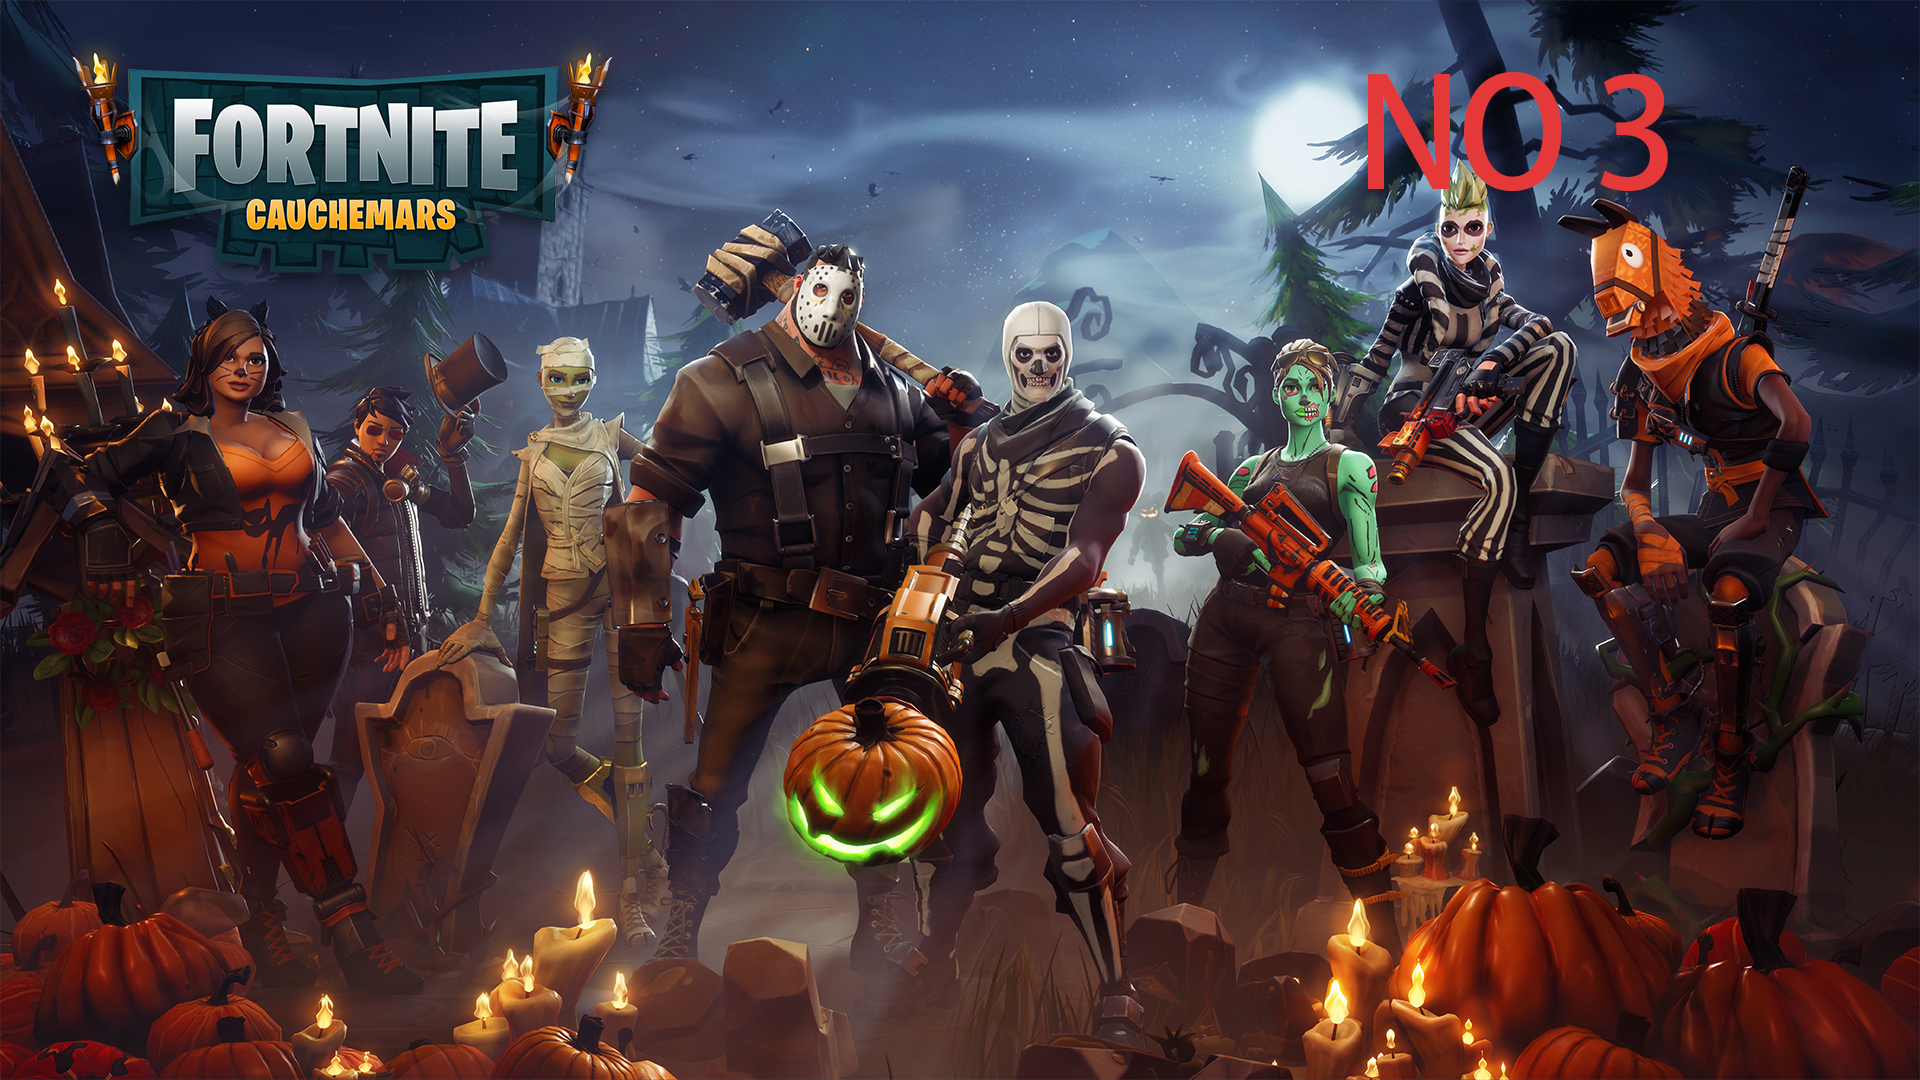 Fortnite Battle Royale Game Silk Poster Without Frame Wall Decor 24x36 Inches On Storenvy